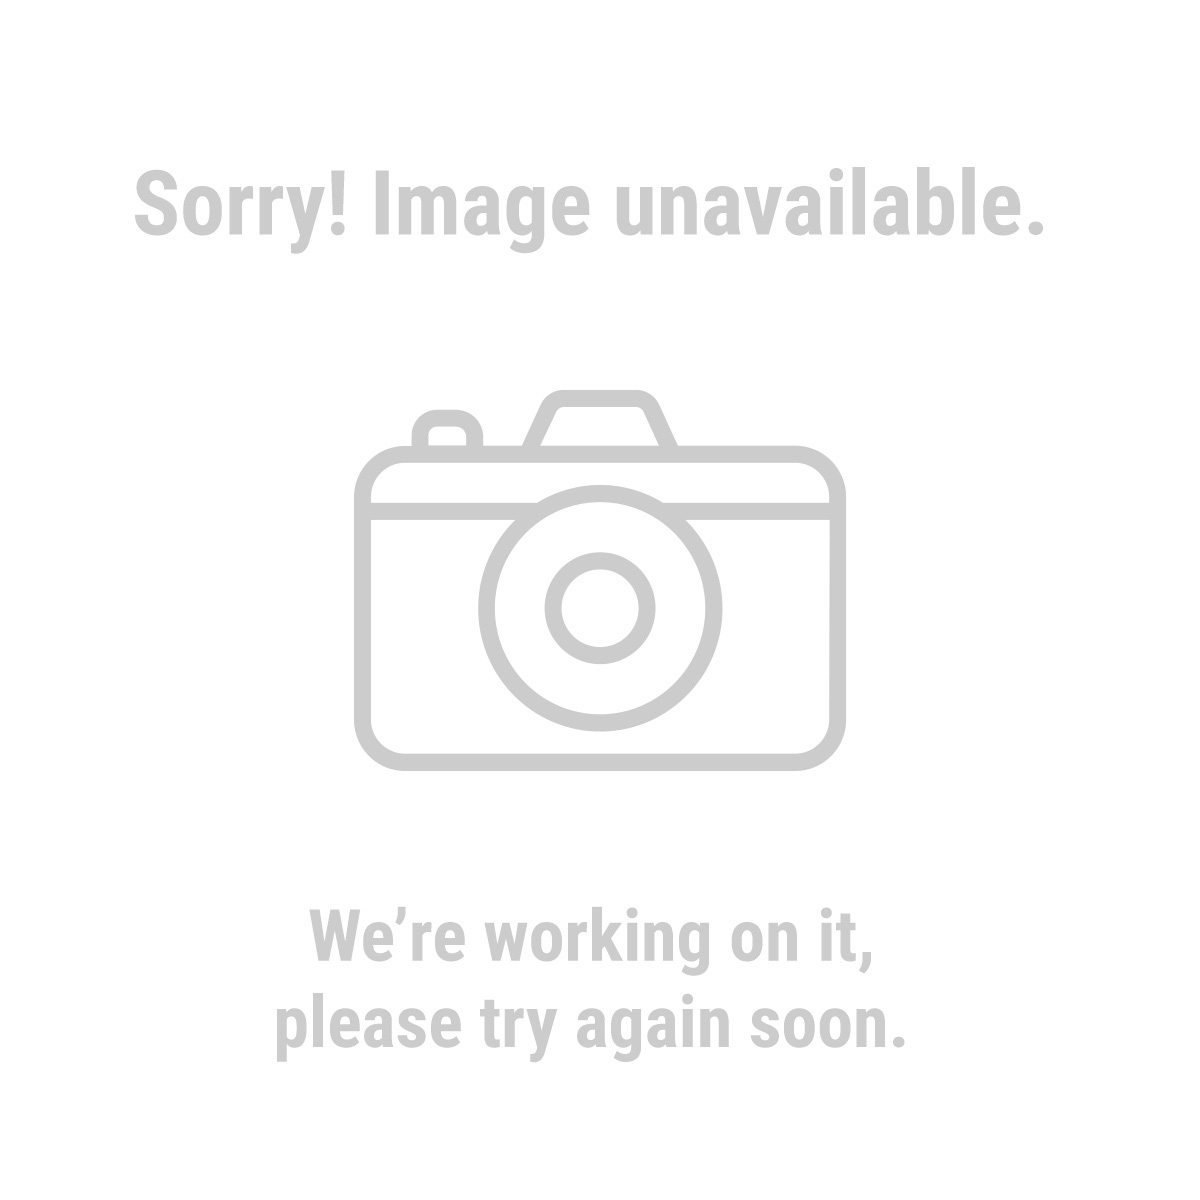 Jobar 68310 Double Garage Door Screen